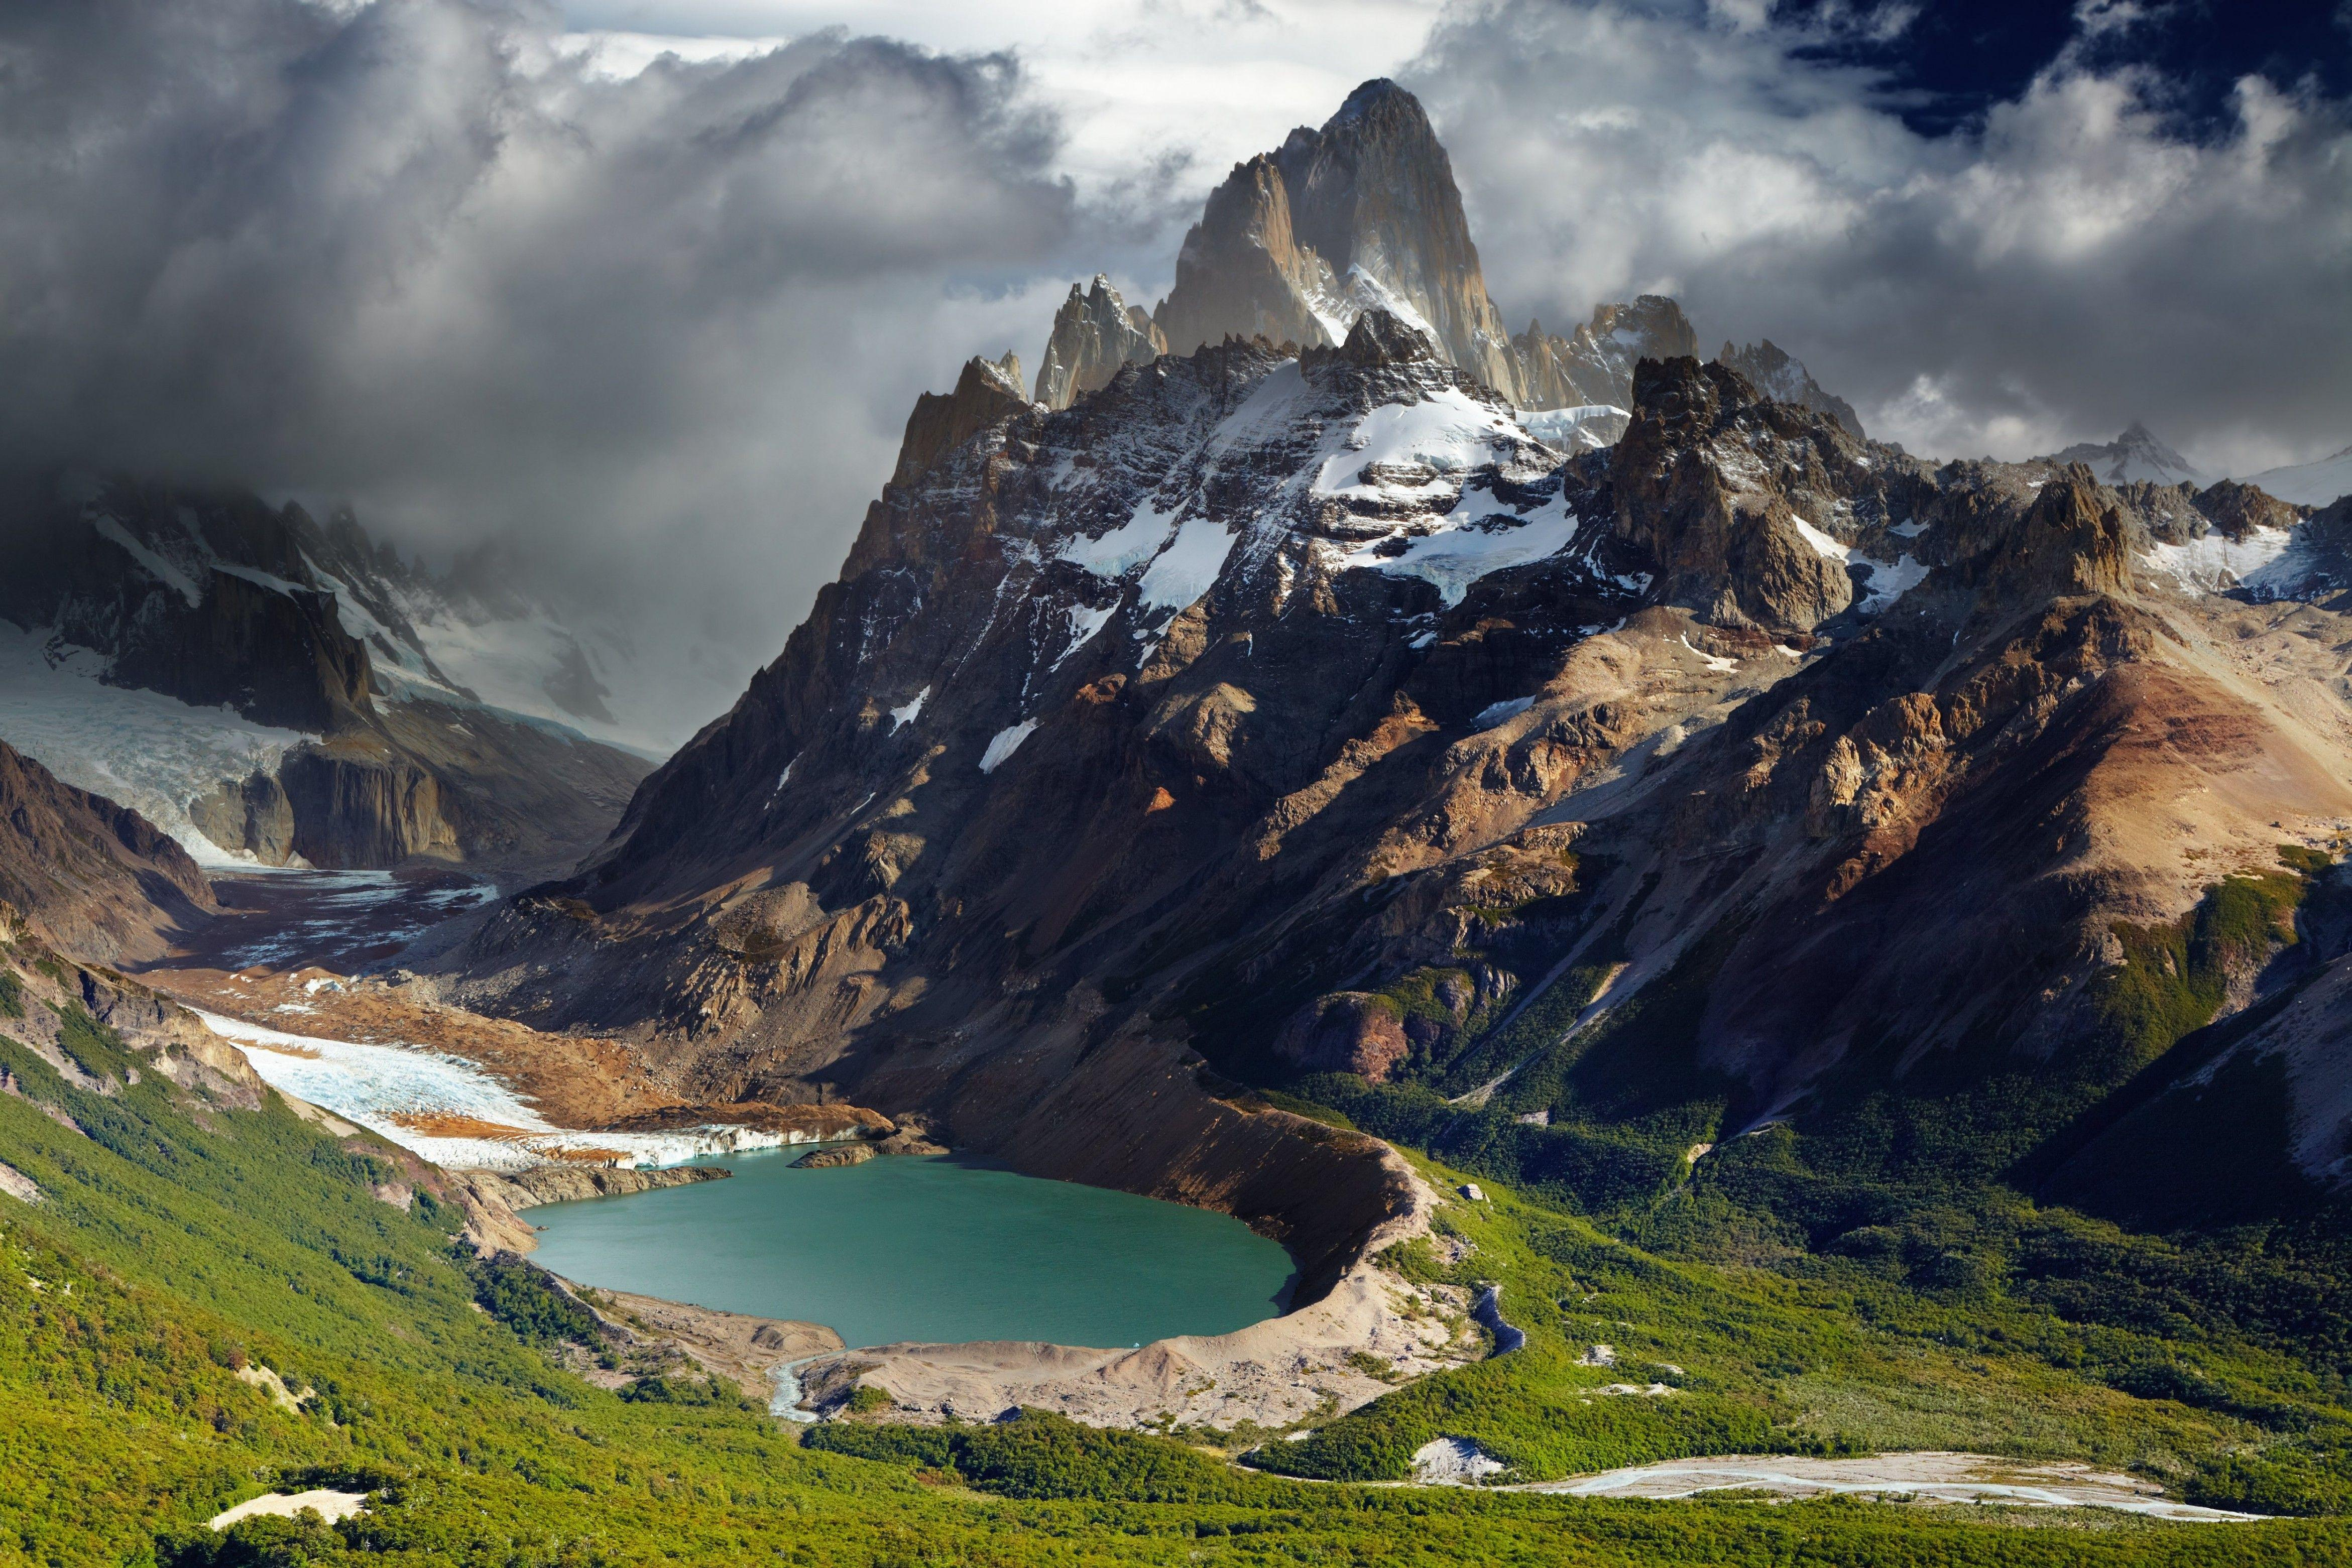 Download 4684x3123 Argentina, Lake, Dark Clouds, Mountain, Scenic ...